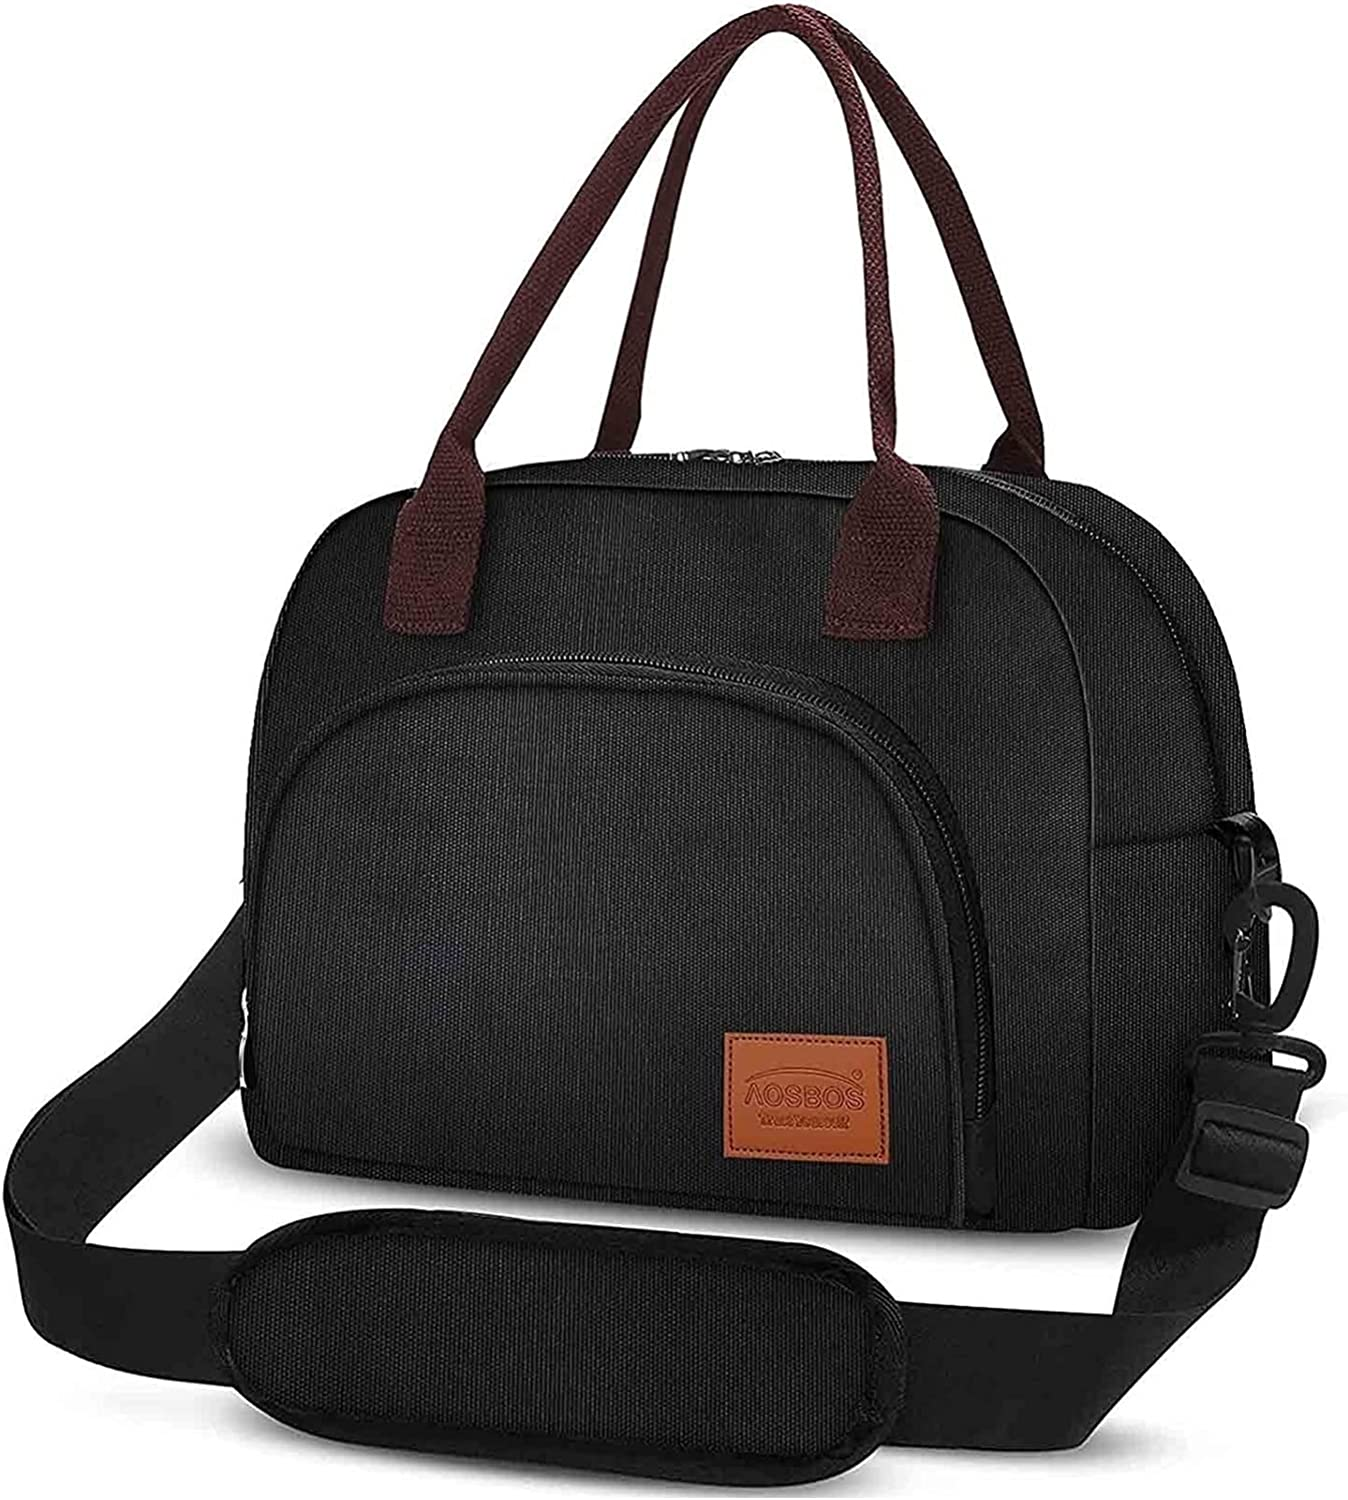 Lunch Factory outlet Bag for Women Insulated Dual Men with Sales of SALE items from new works Work